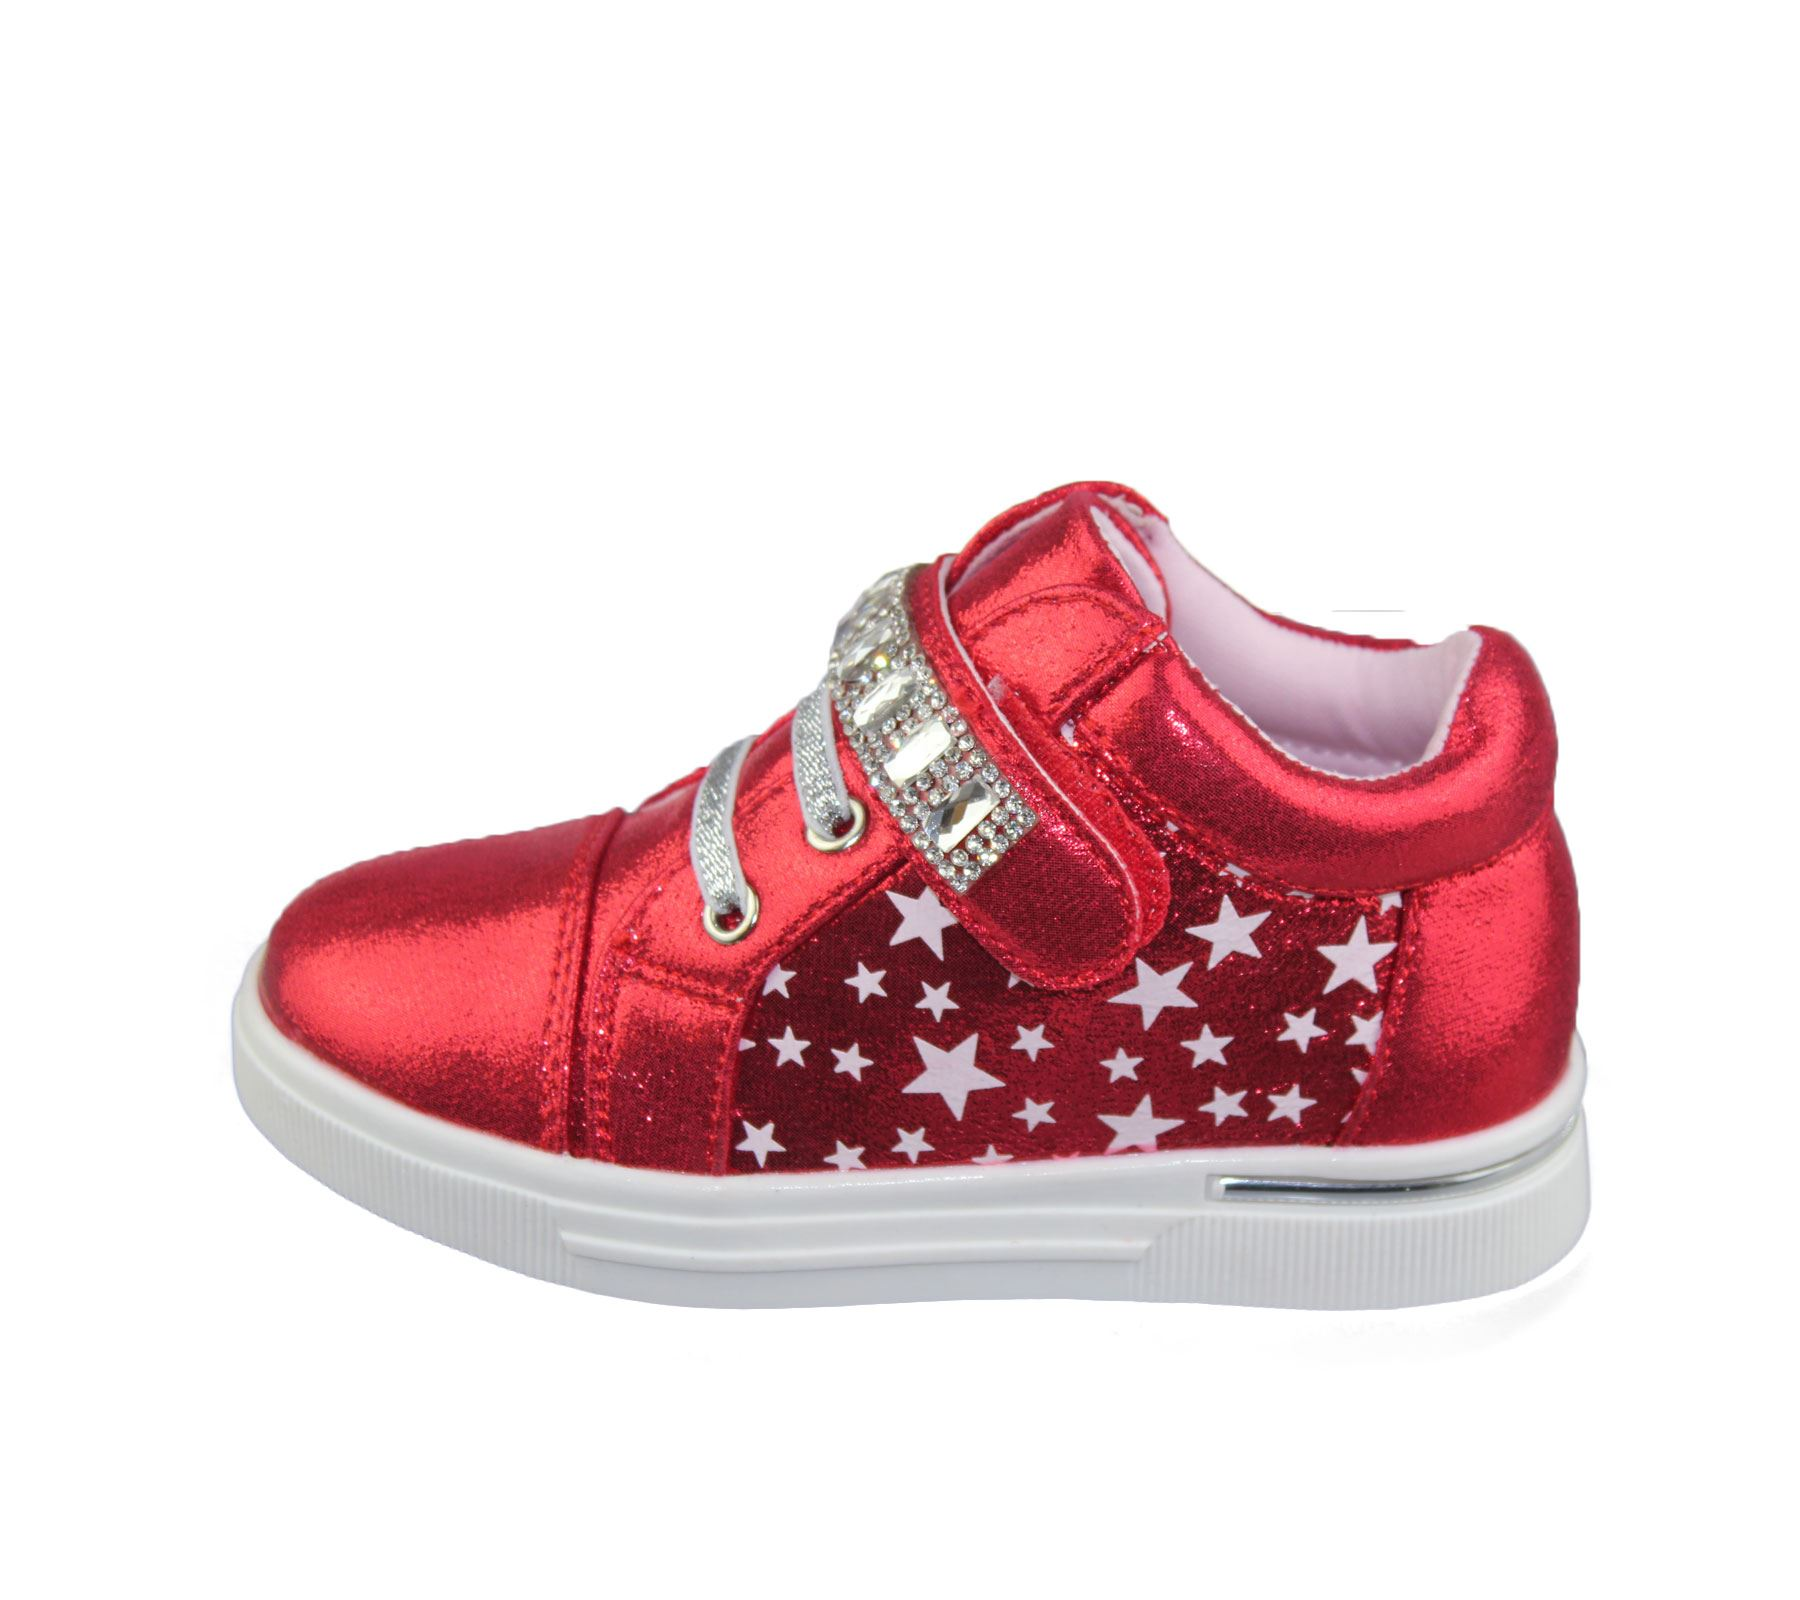 Girls Trainer Shoes Infants Fashion Causal Running Walking Comfort Boots Size